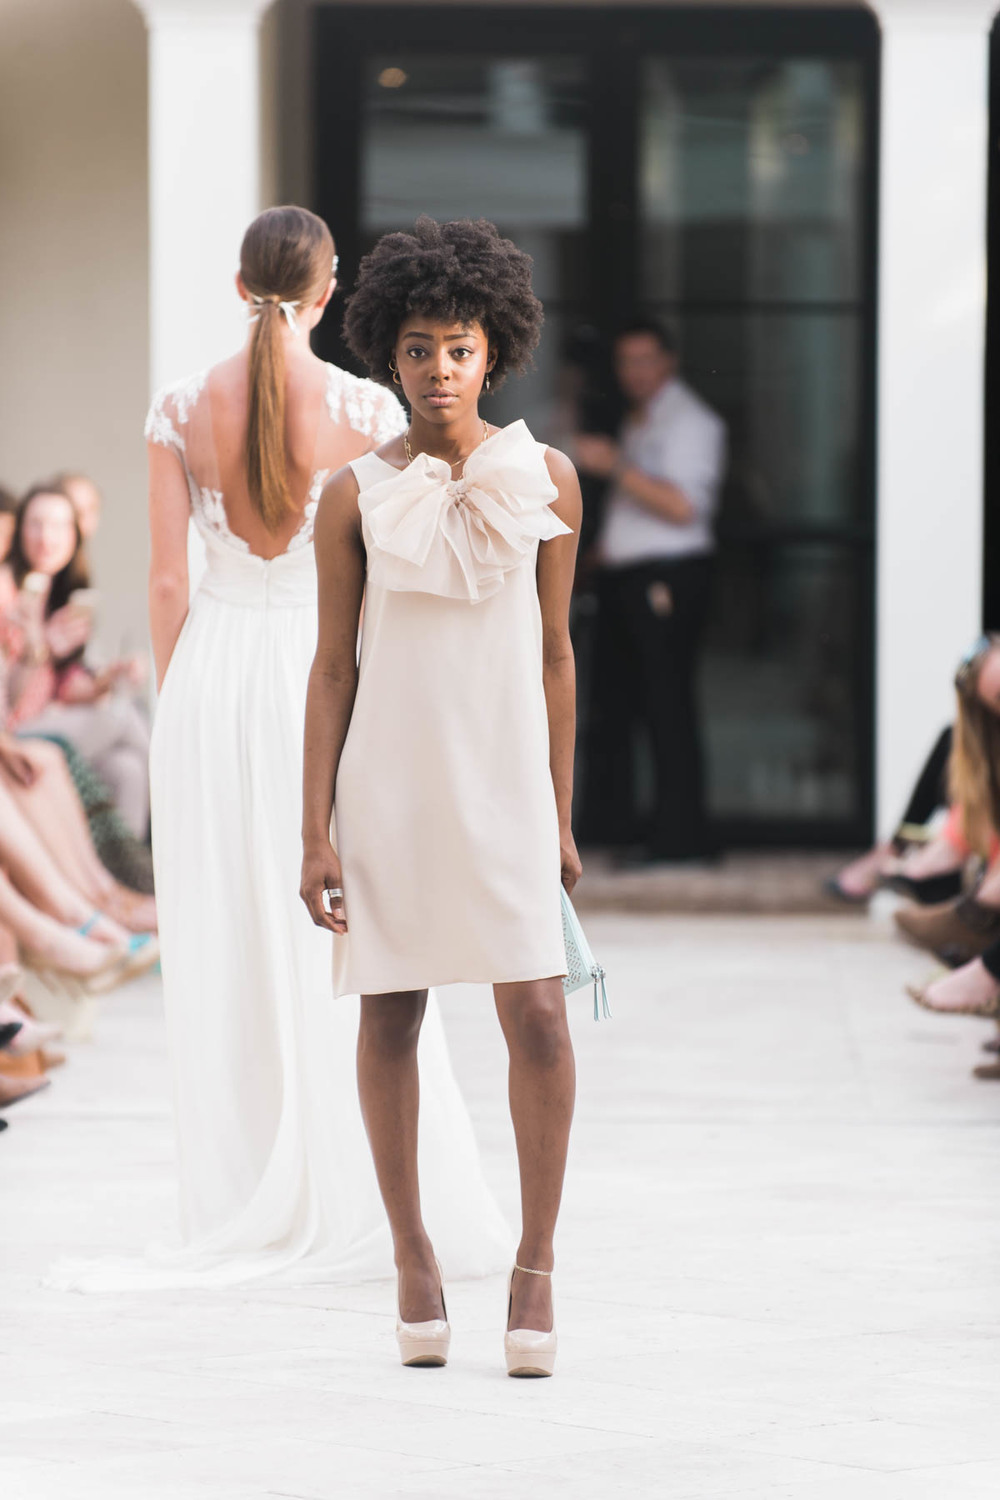 Dolly Pearl Dress at Charleston Bridal Fashion Event